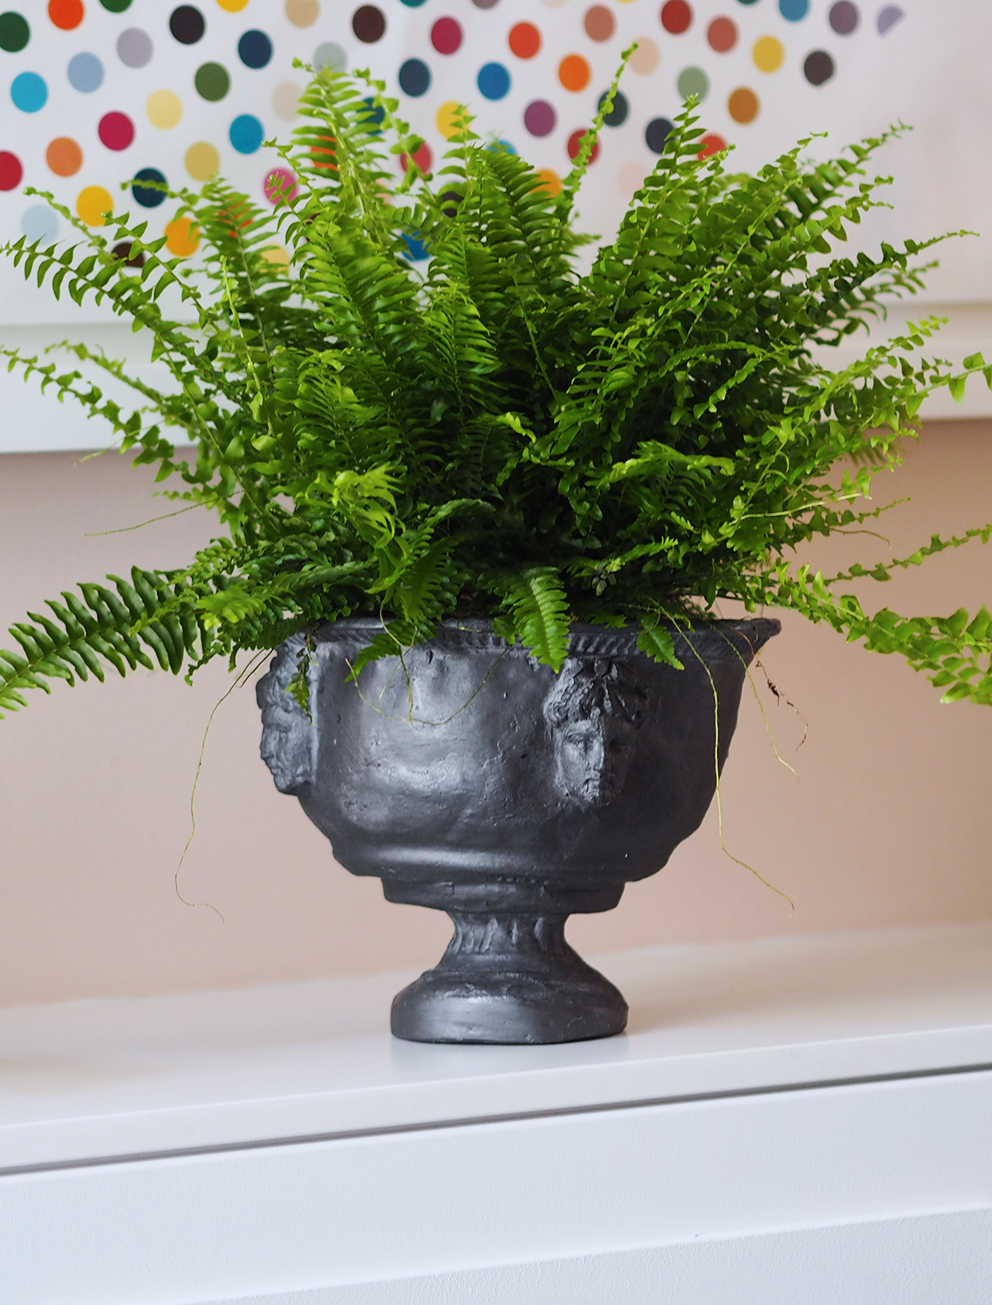 My Summer Dining Room - French For Pineapple Blog - boston fern in a decorative urn planter